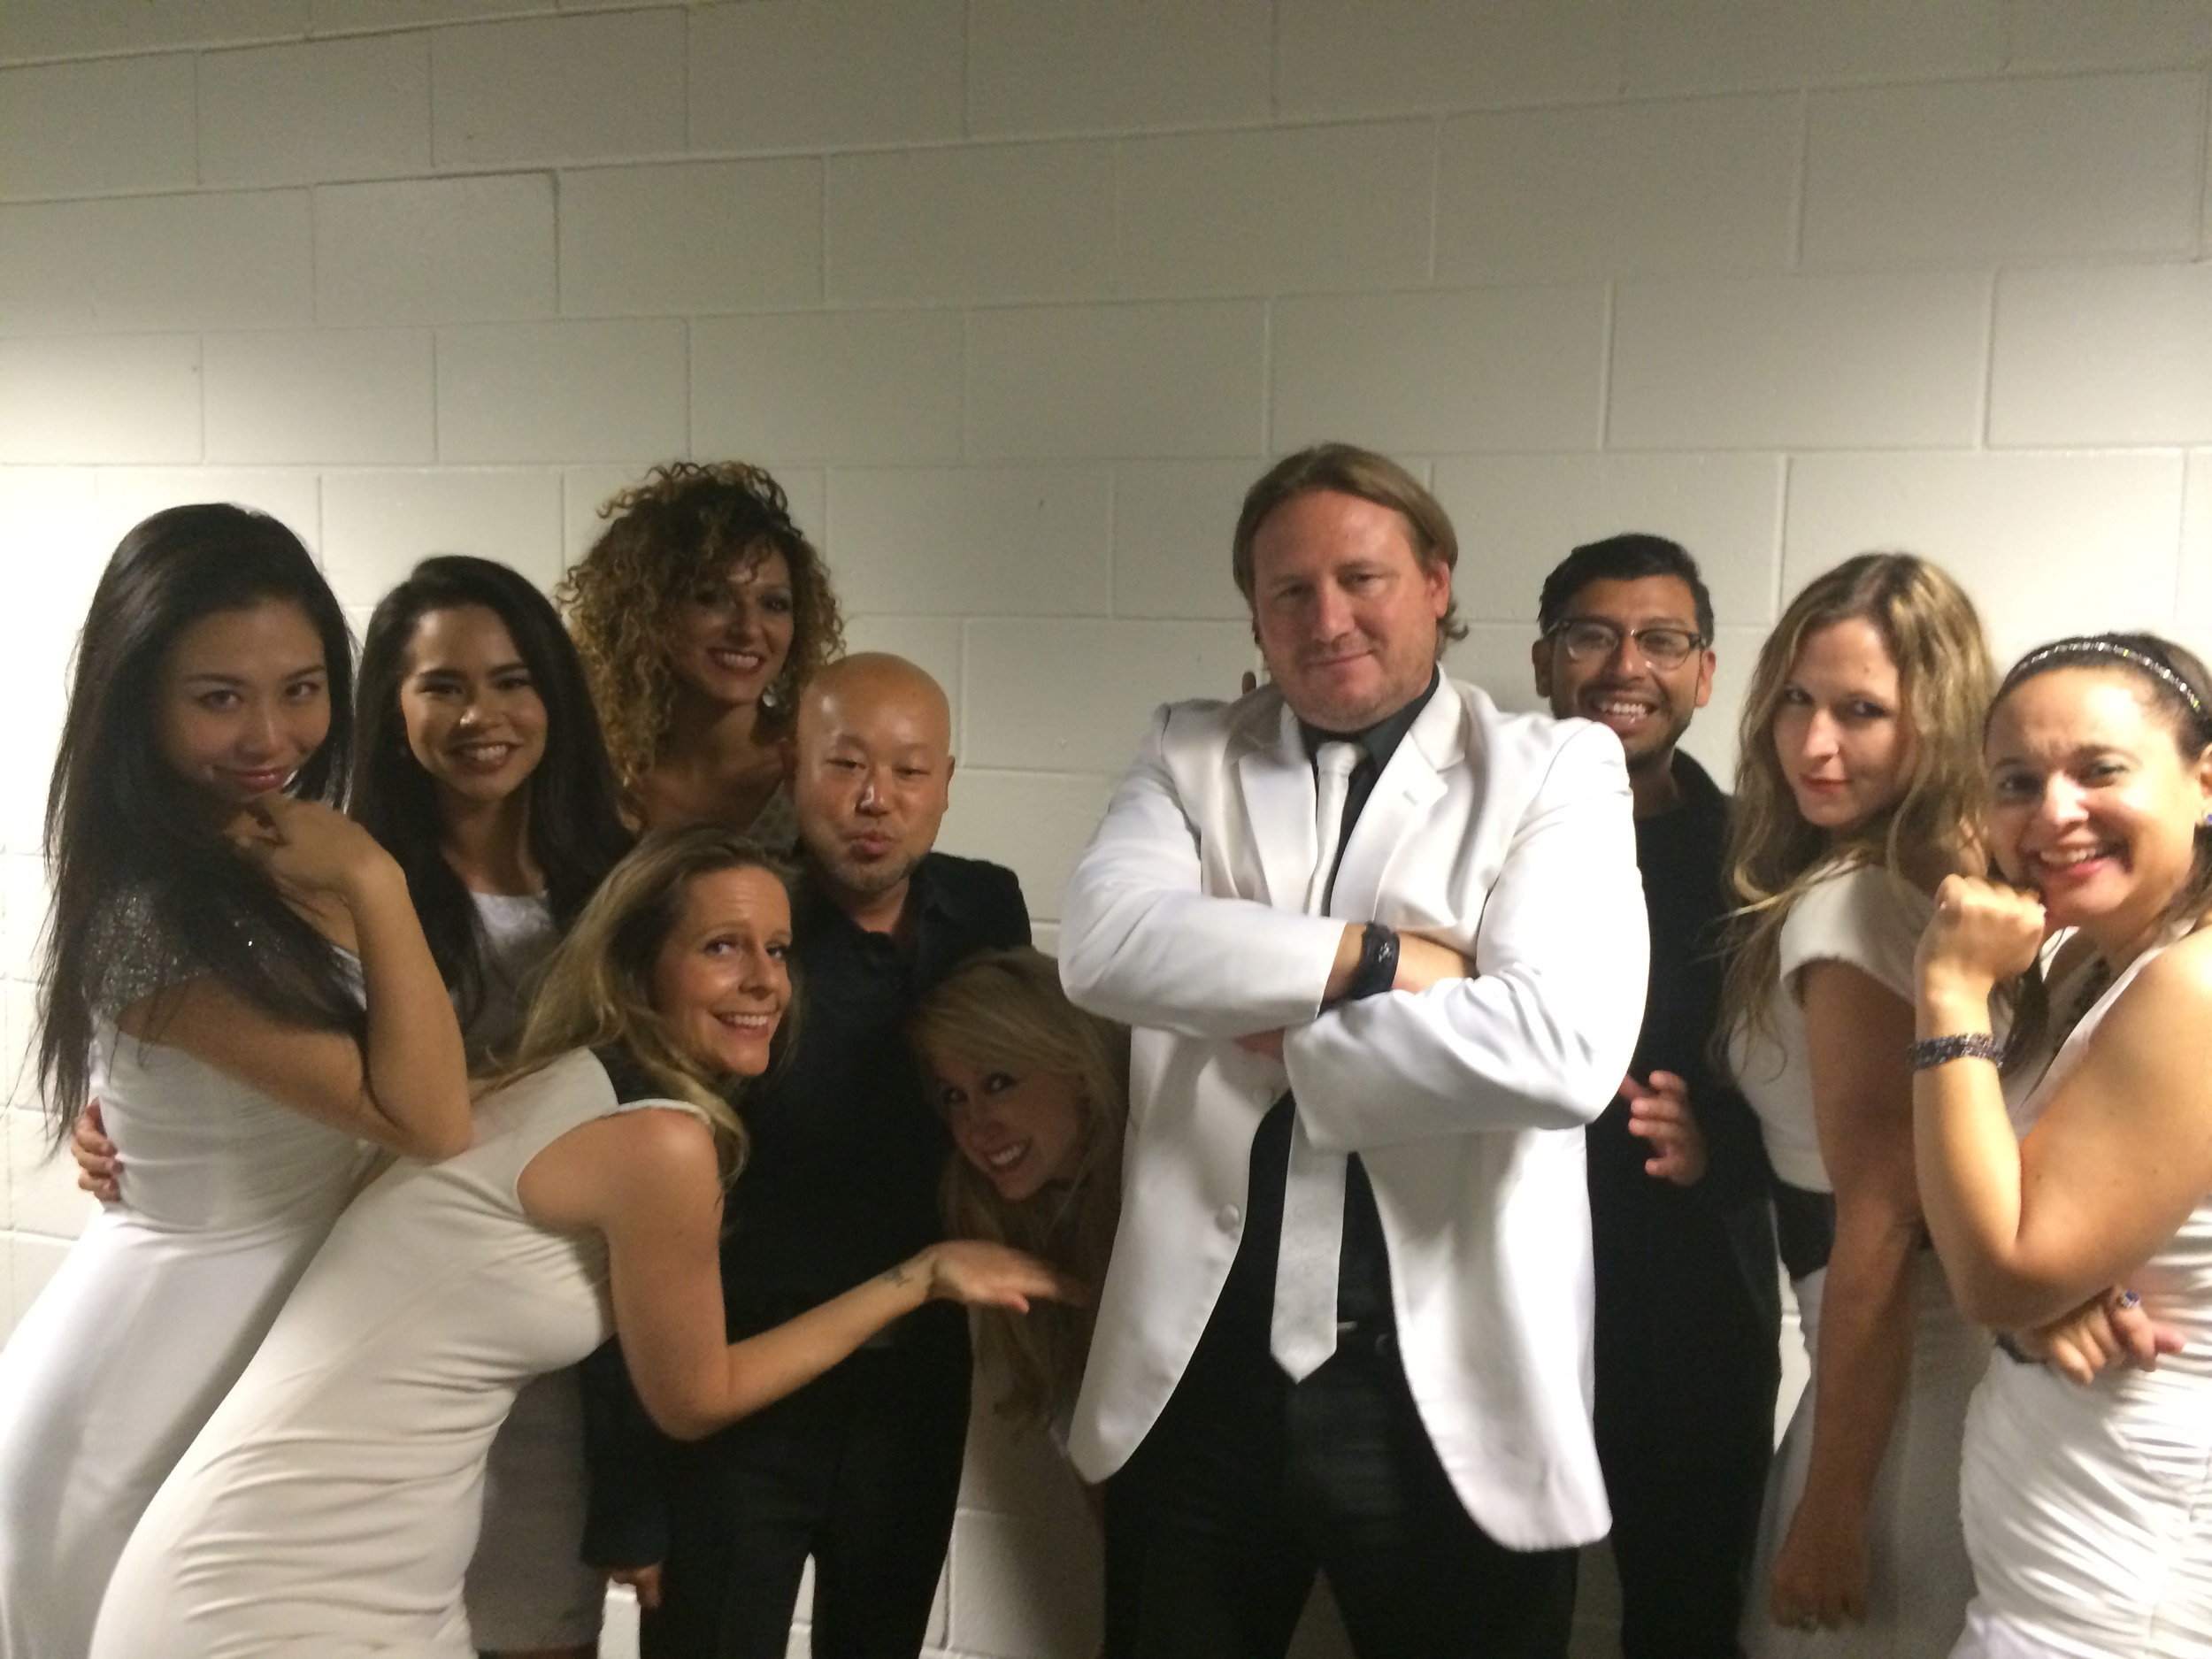 String section for Marco Antonio Solísbackstage with Concert Talent president Sean Bradley  September 2014